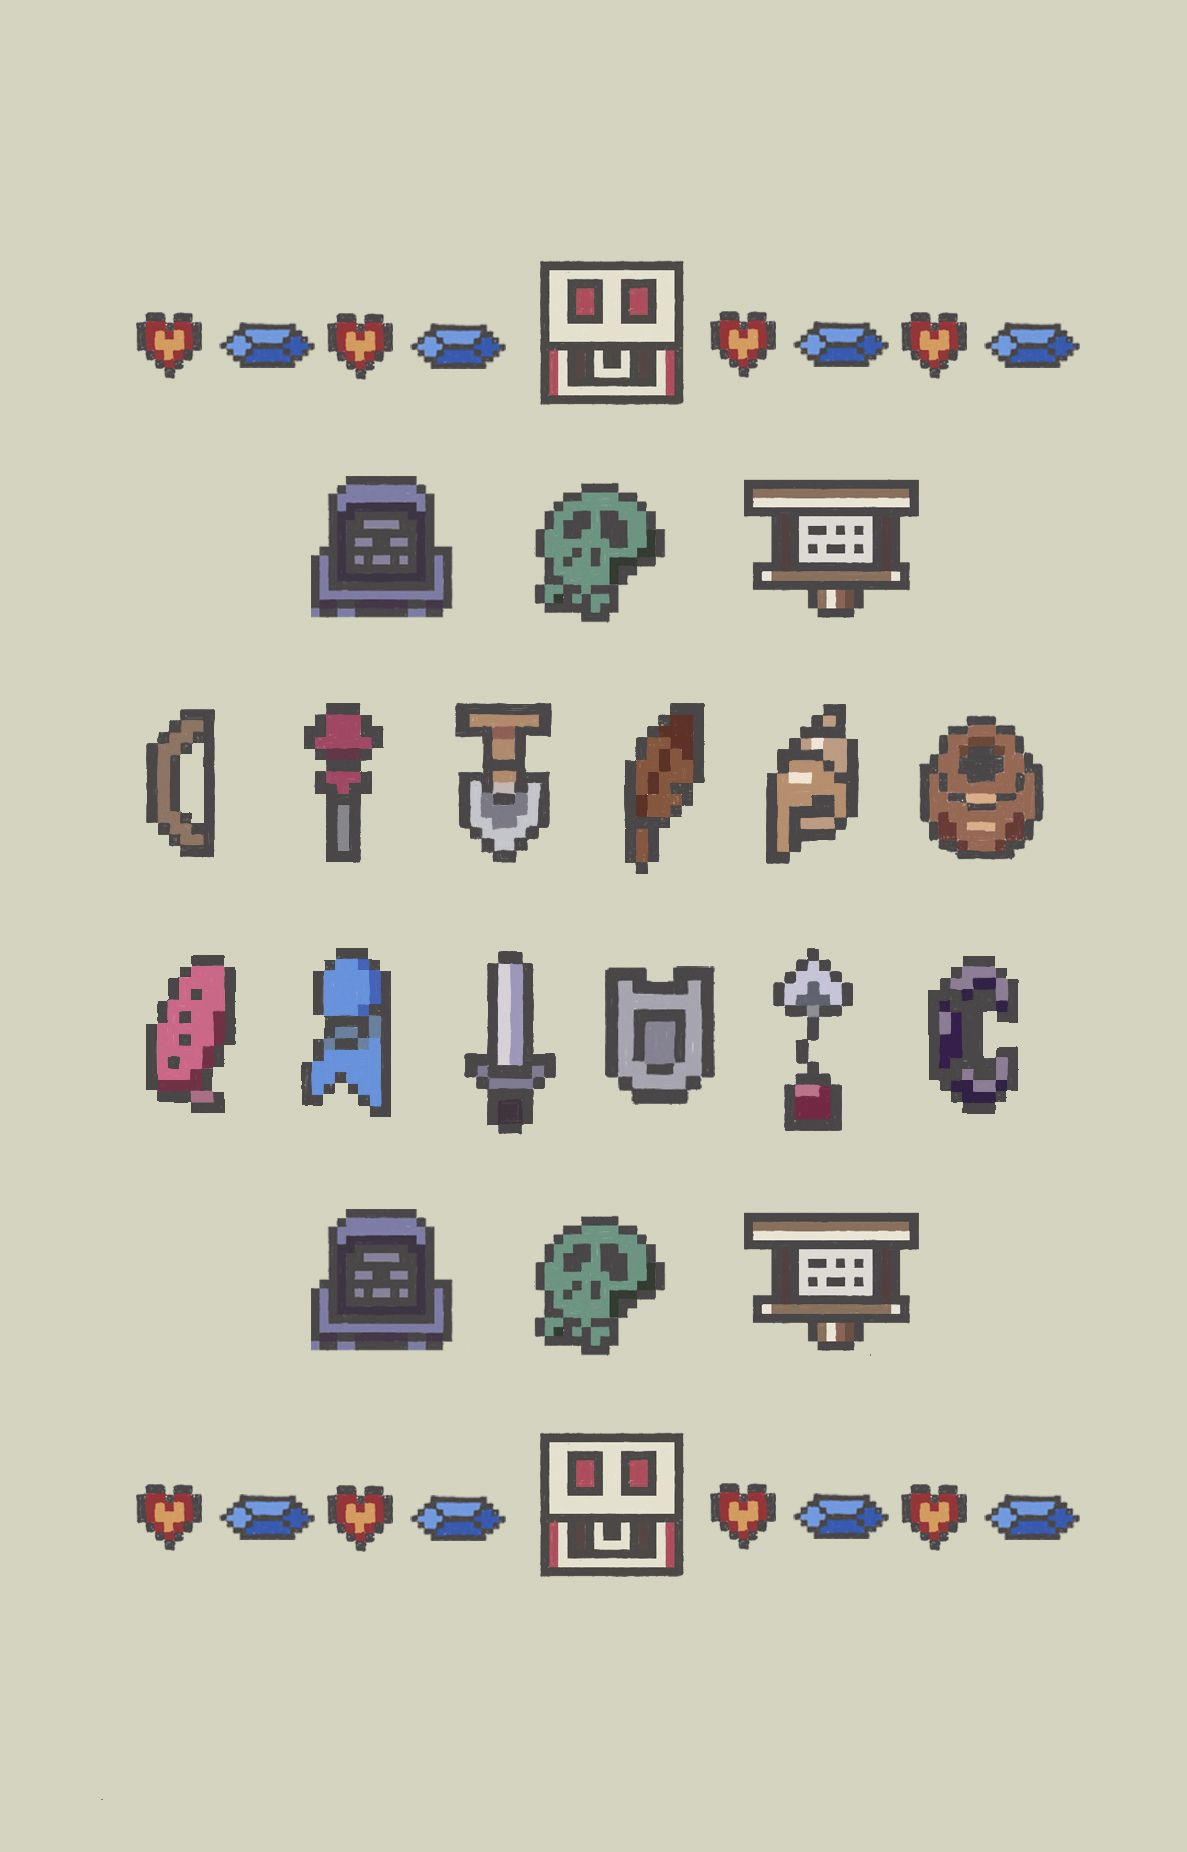 The Legend Of Zelda Link S Awakening 8 Bit Inventory Iphone Mobile Wallpaper Legend Of Zelda Pixel Art Awakening Art